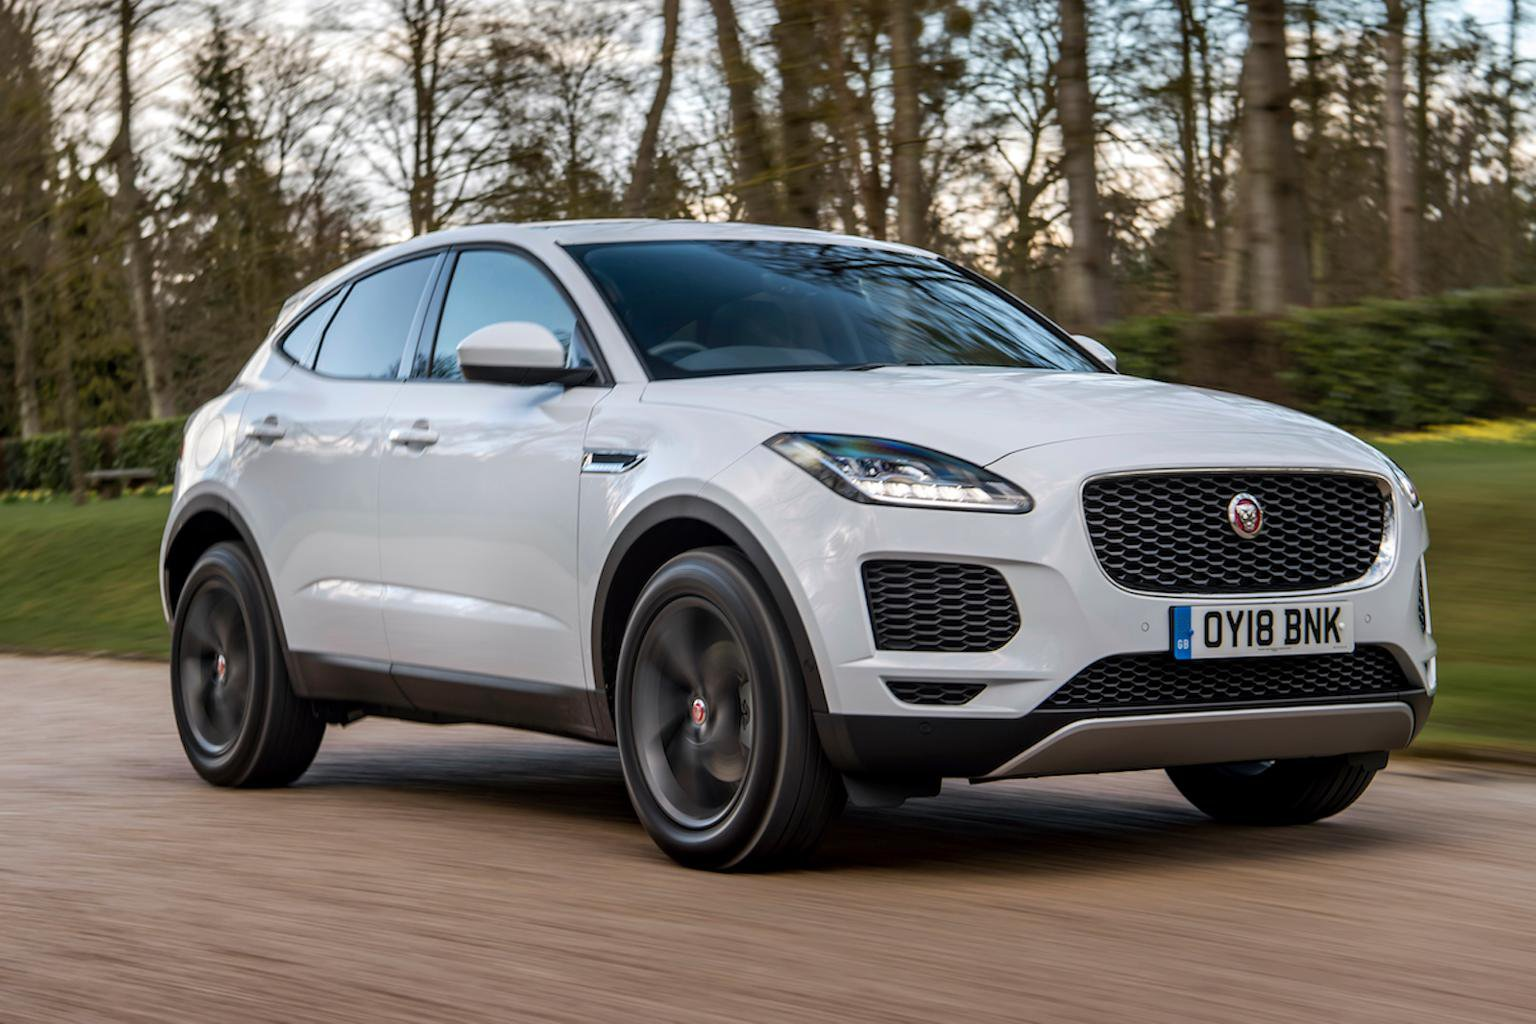 2018 Jaguar E-Pace 2.0 D150 review - price, specs and release date